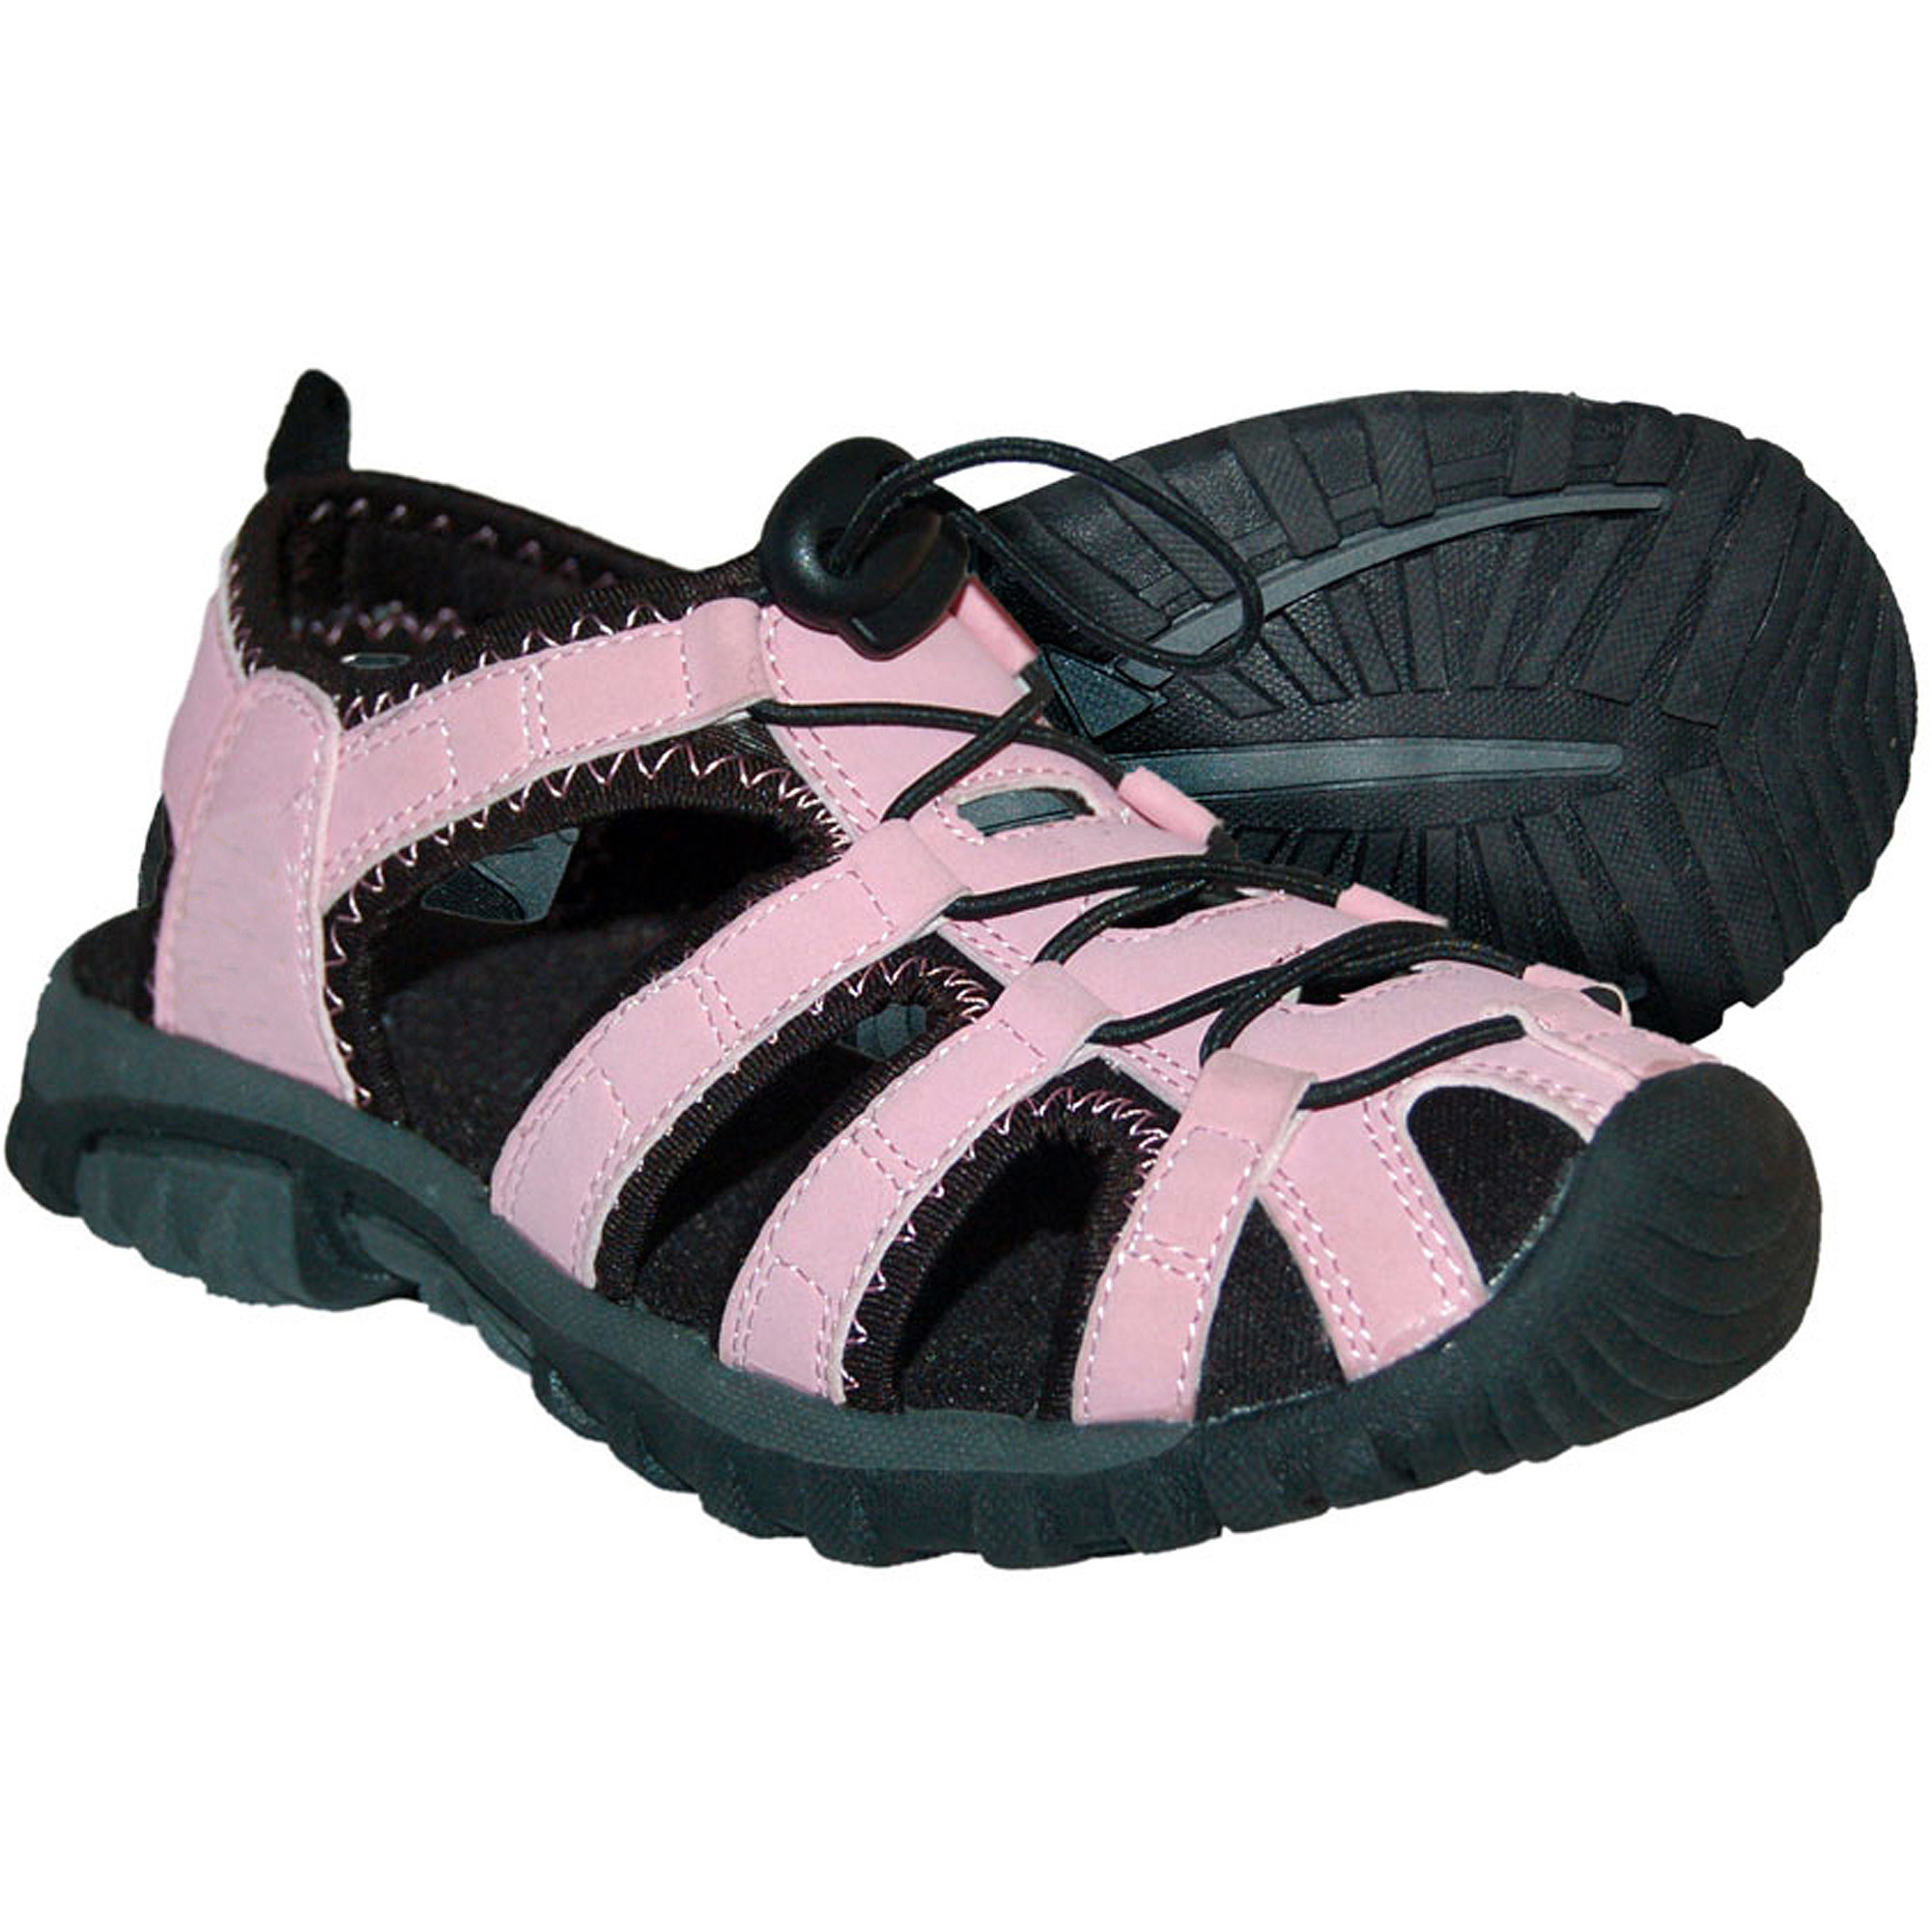 Affordable Comfortable Sandals For Walking